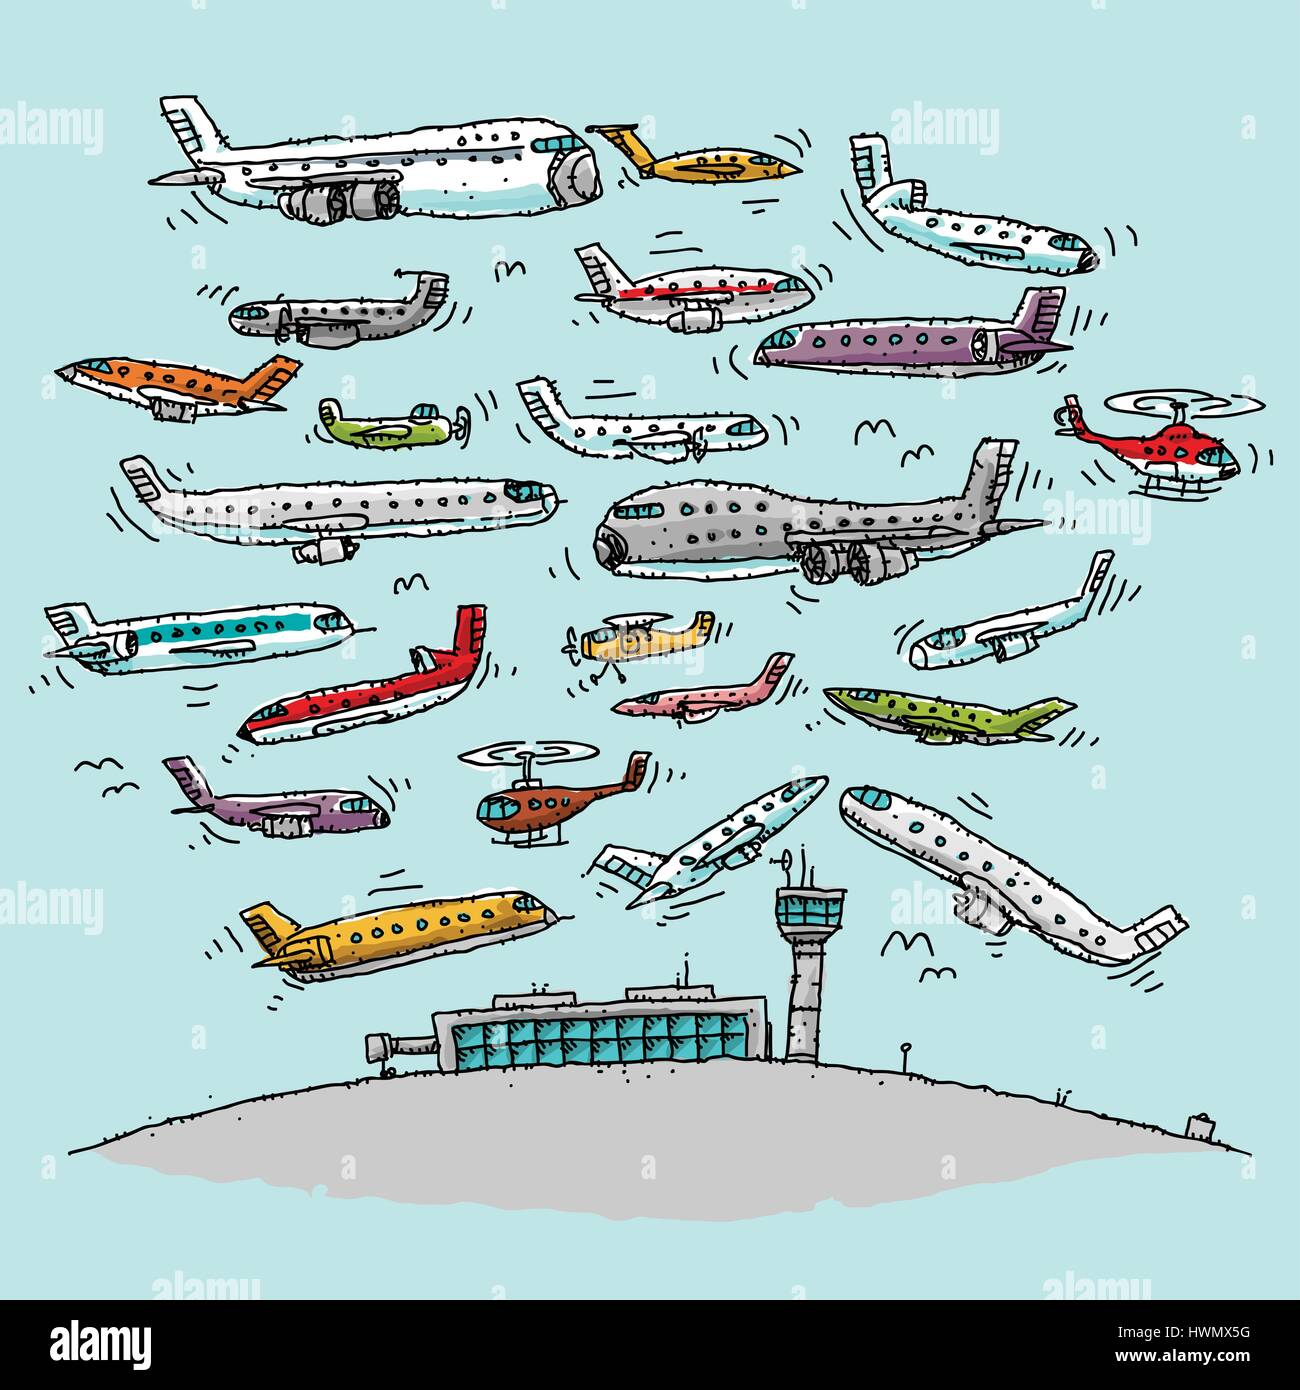 a cartoon of airspace above an airport crowded with a variety of